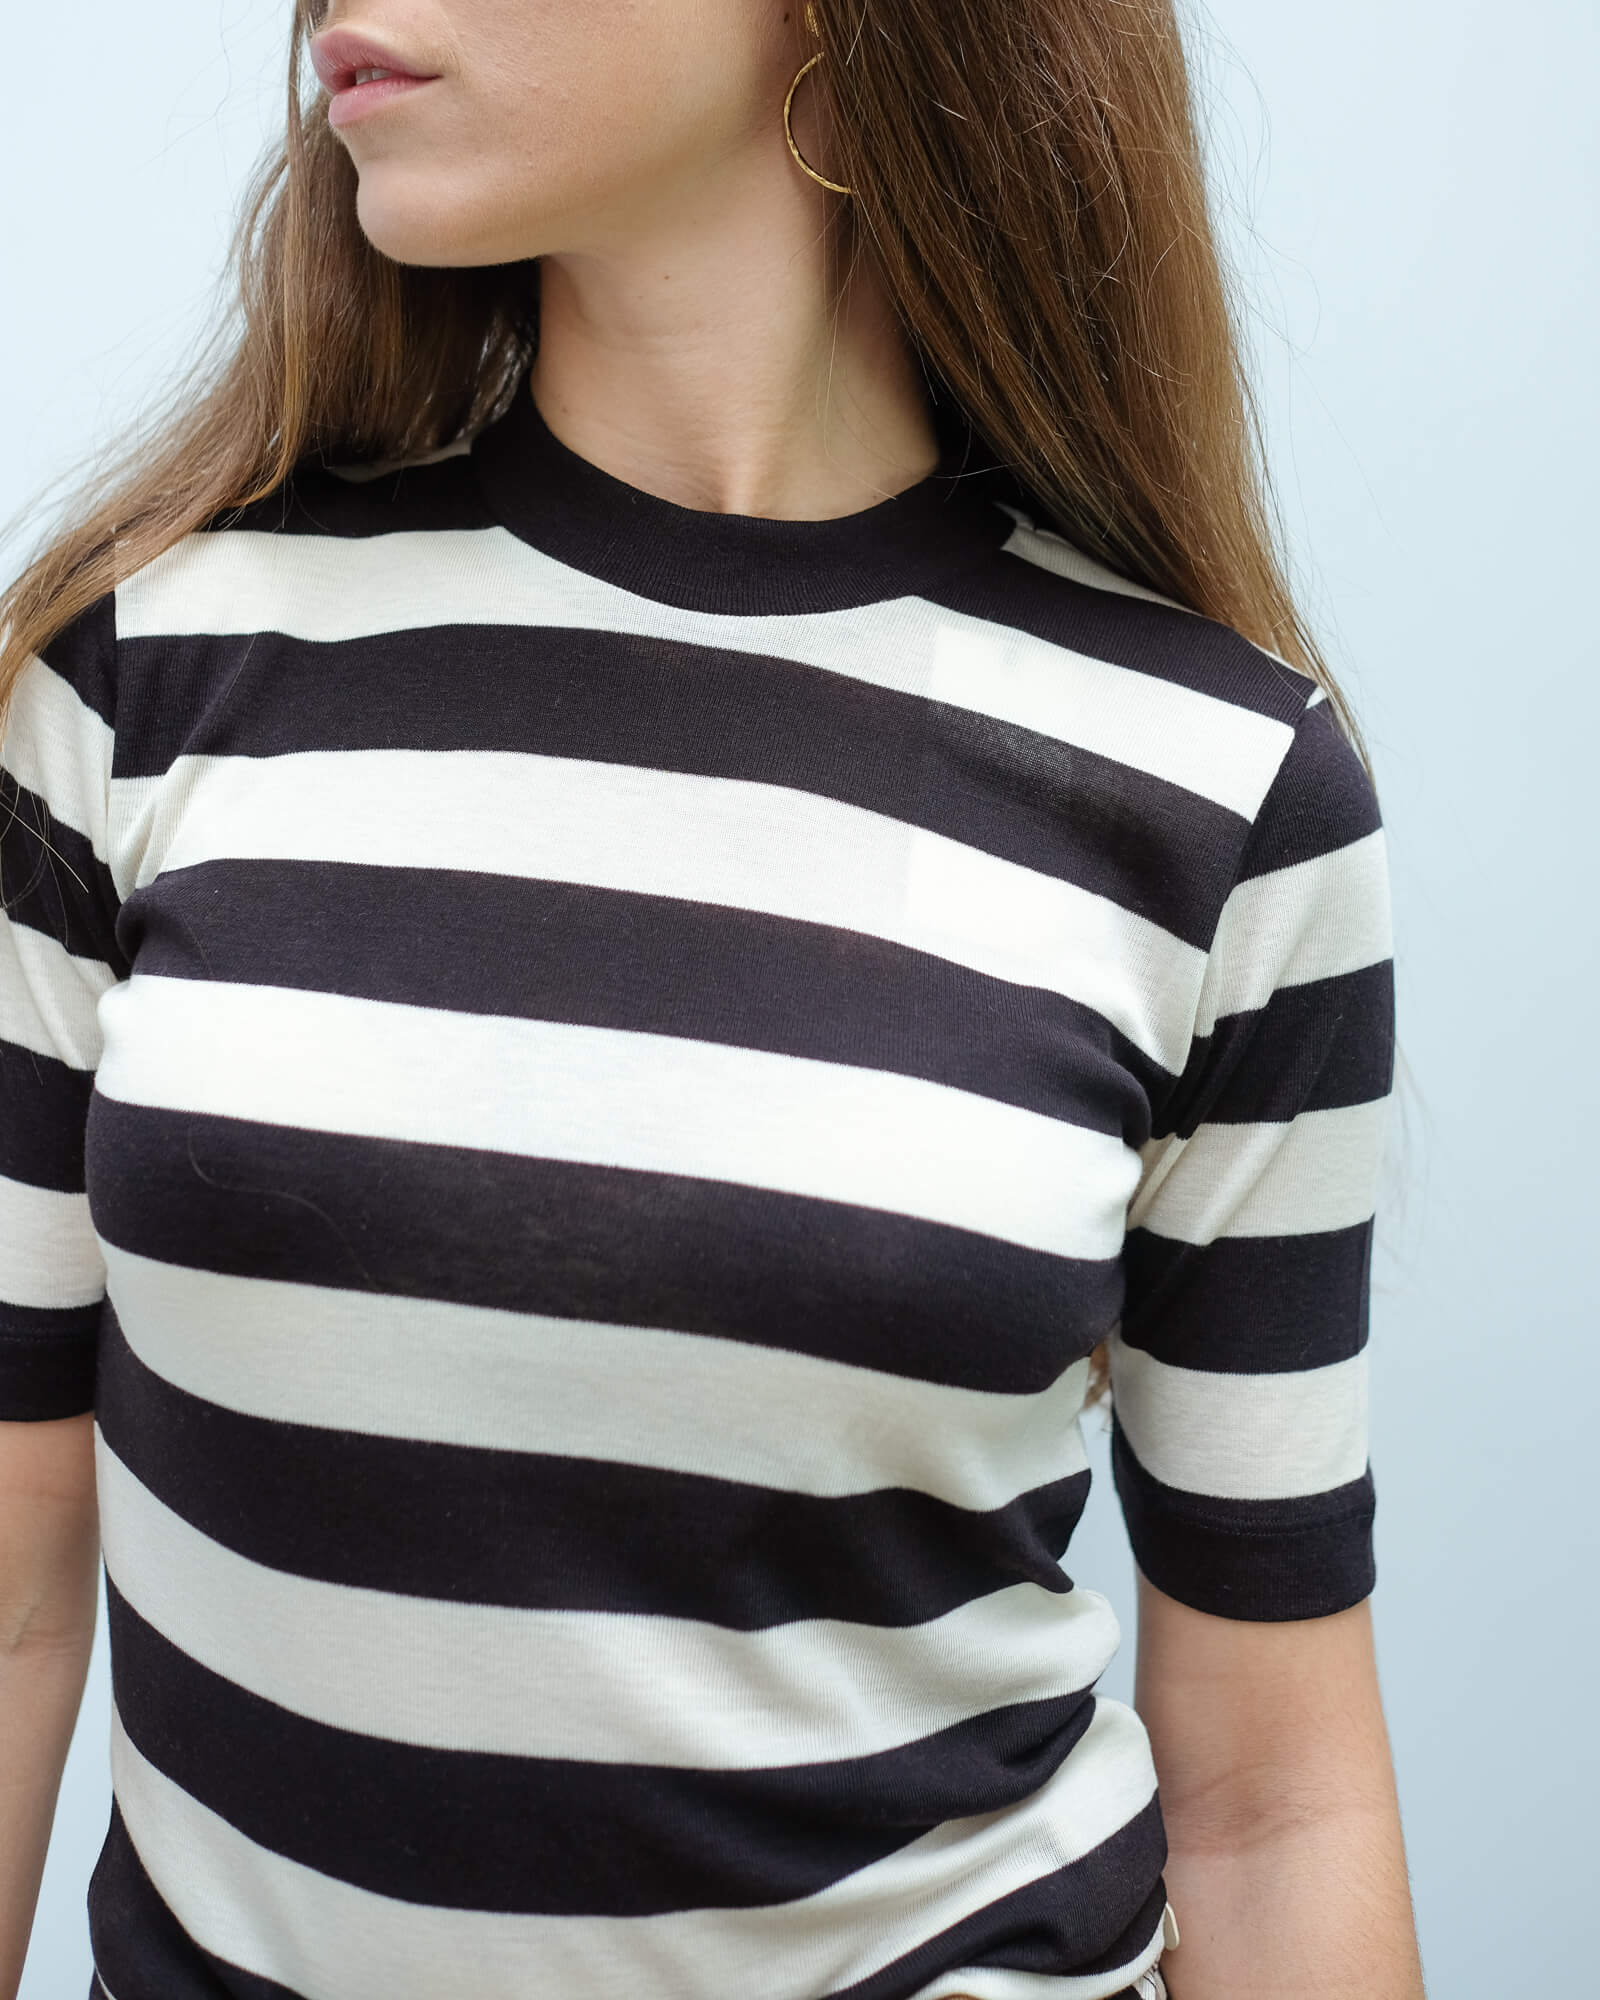 AB 150704 High neck fitted stripe tee in black